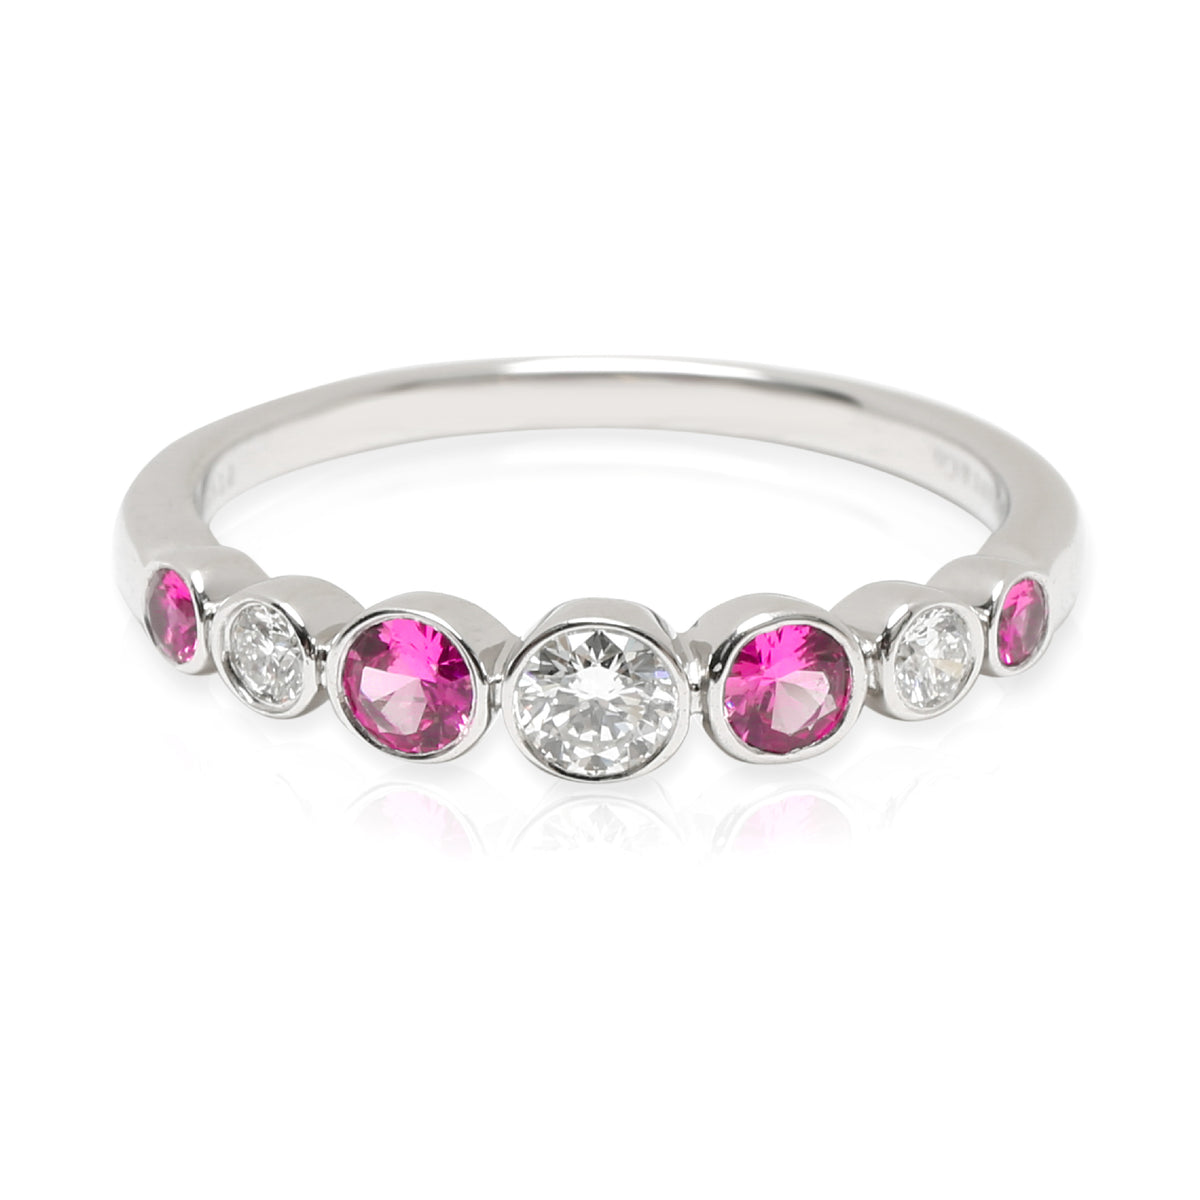 Tiffany & Co. Jazz Ring with Diamond & Pink Sapphires in  Platinum 0.25 CTW